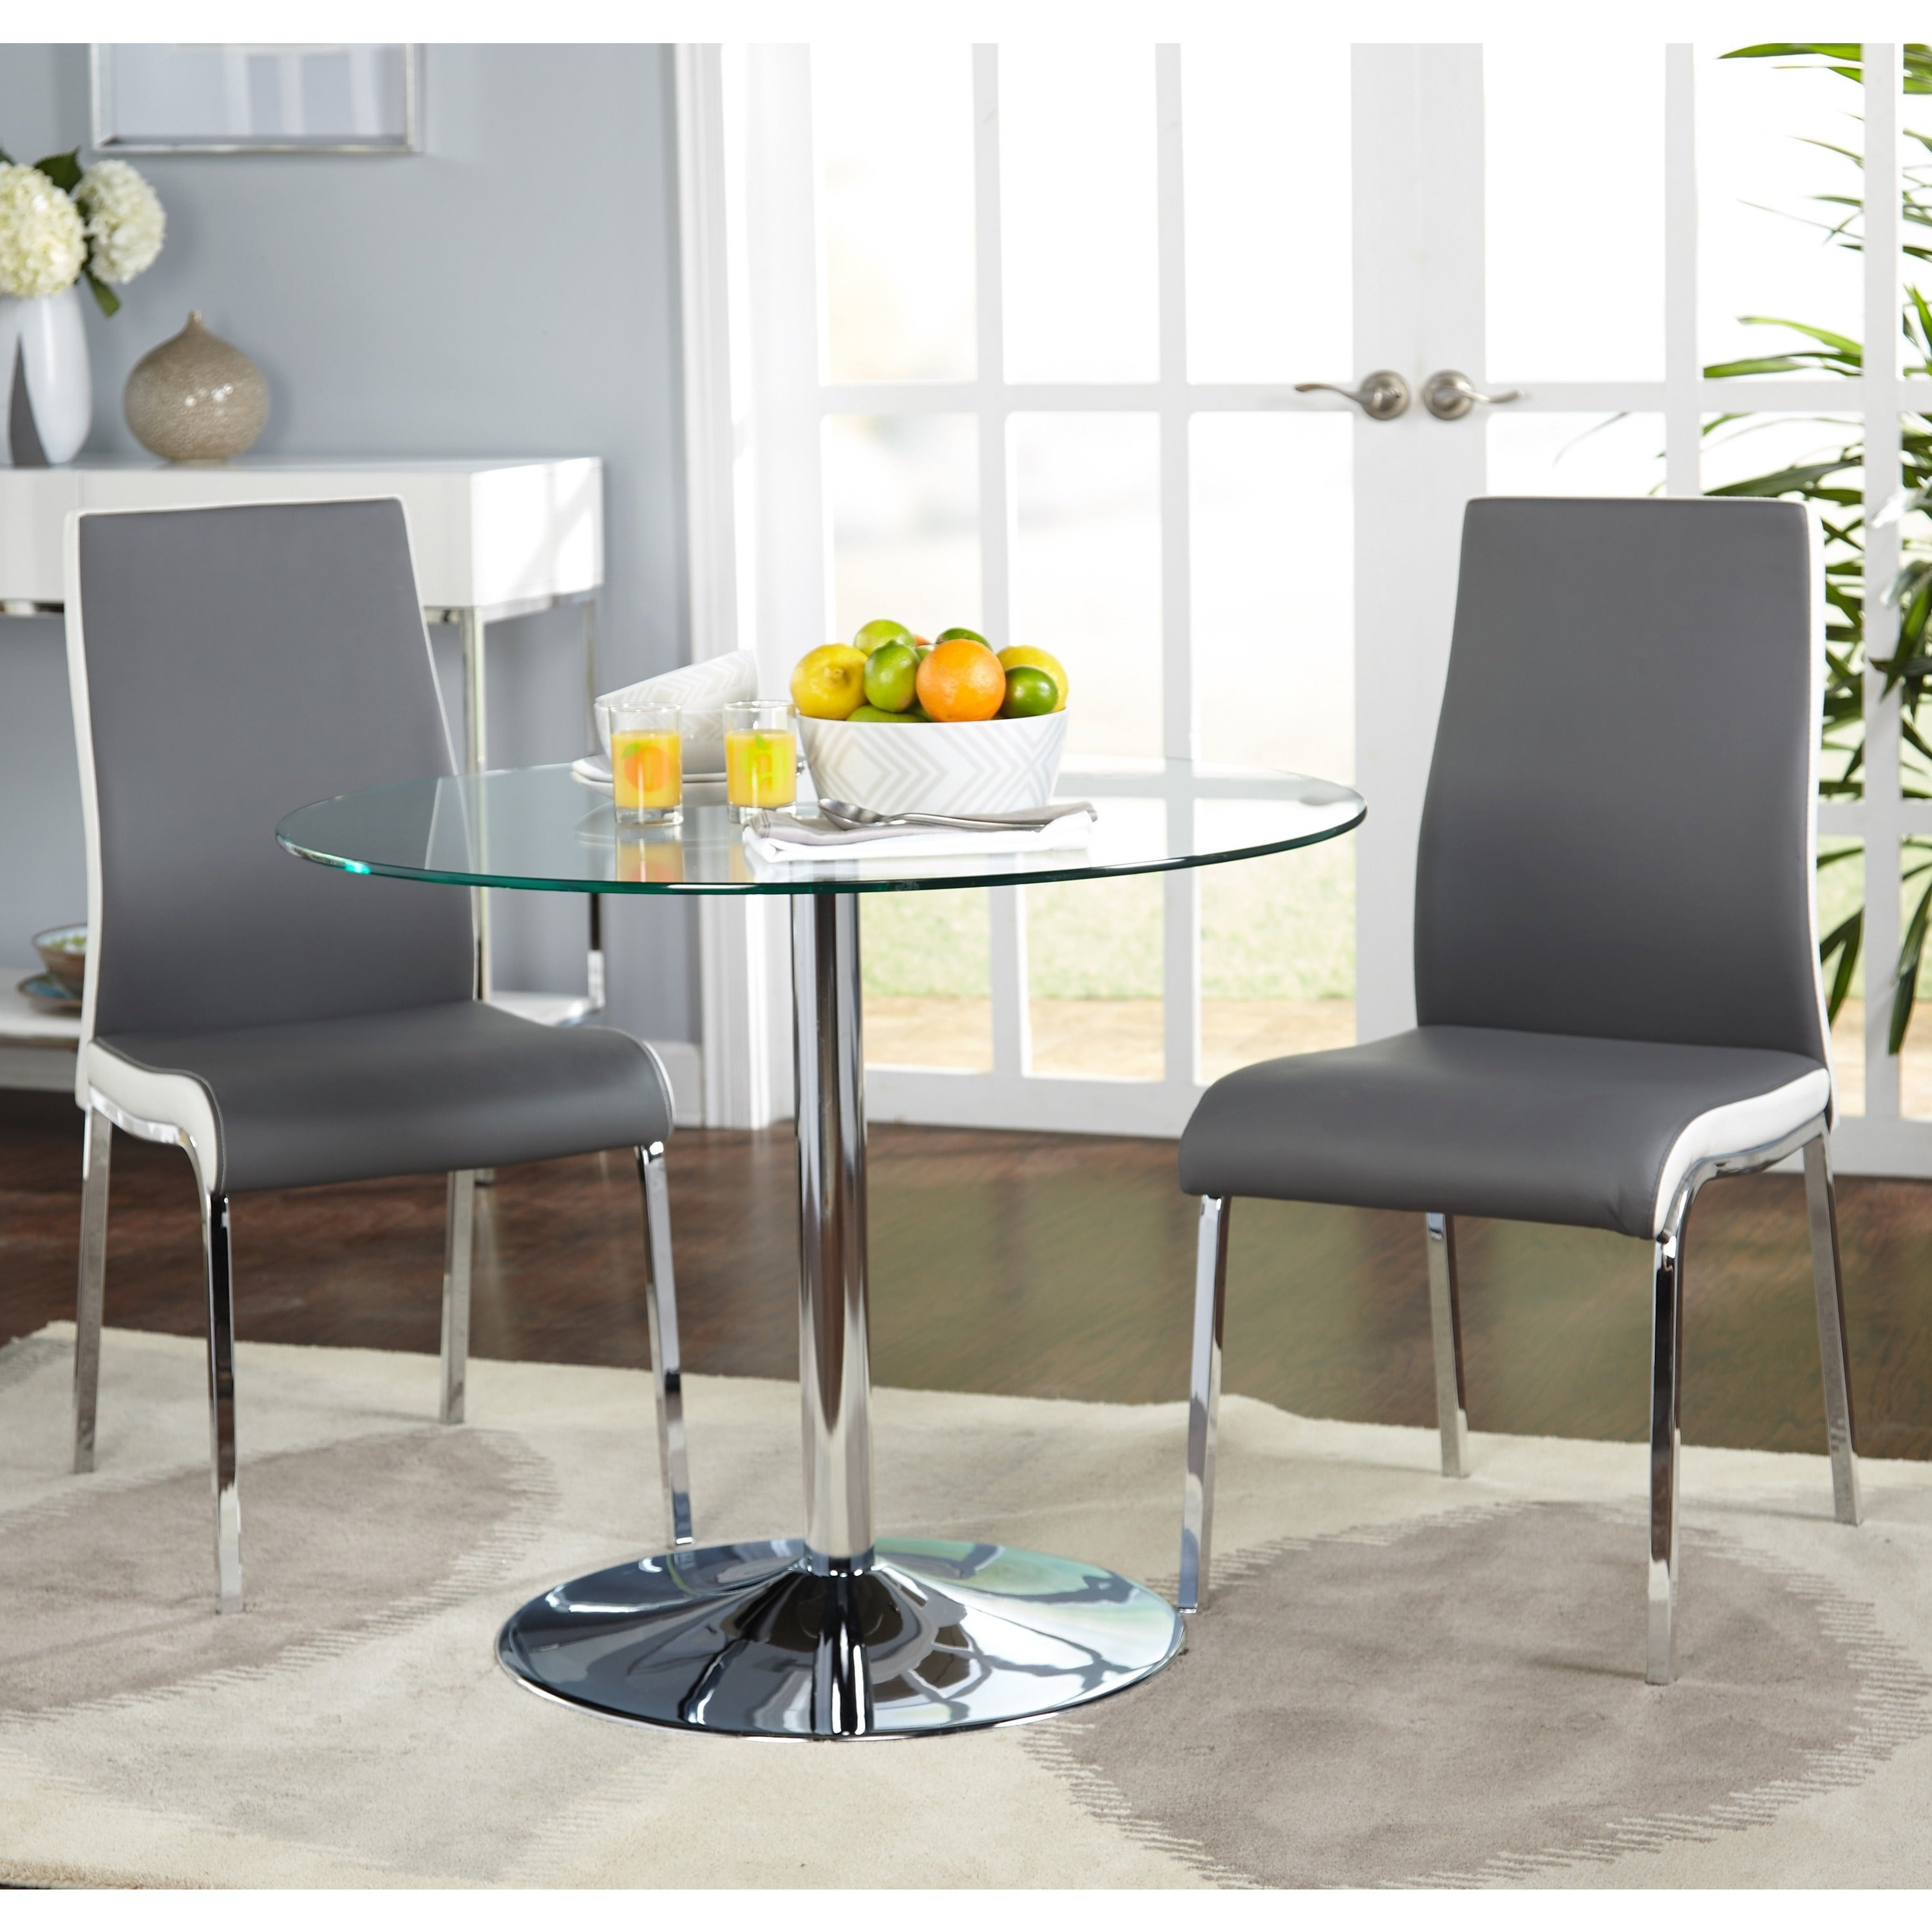 Simple Living Nora Modern Dining Room Set - Free Shipping Today ...